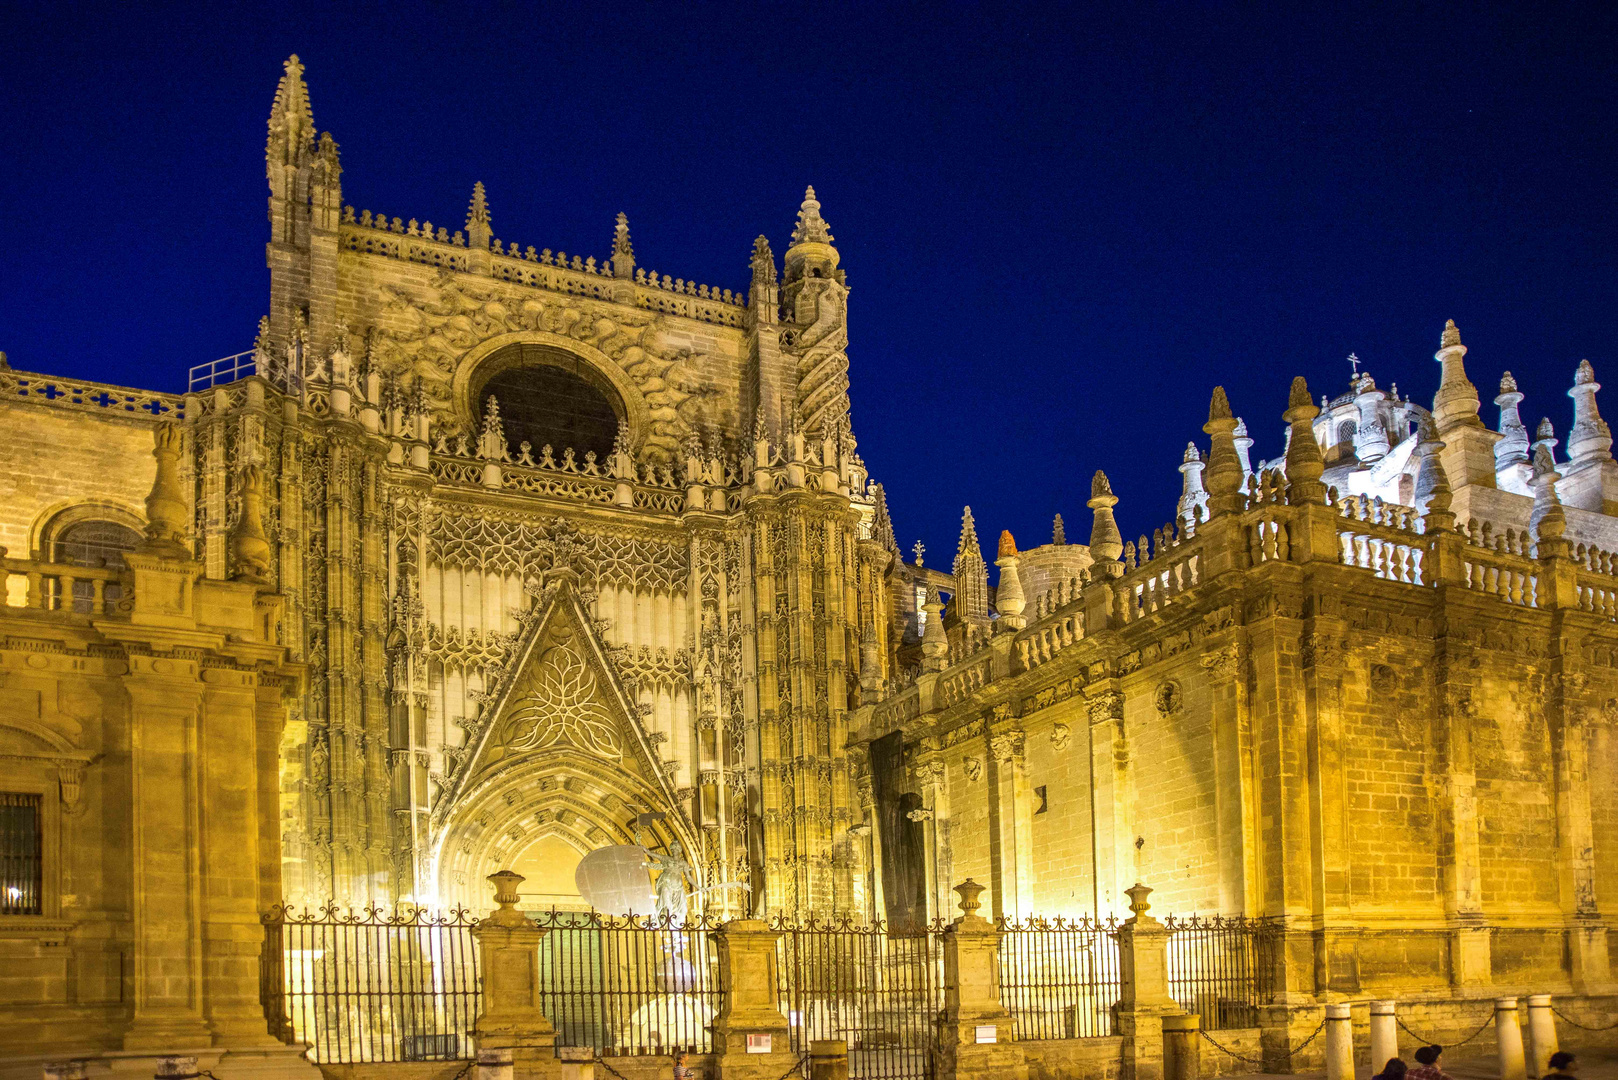 Catedral of Seville at night